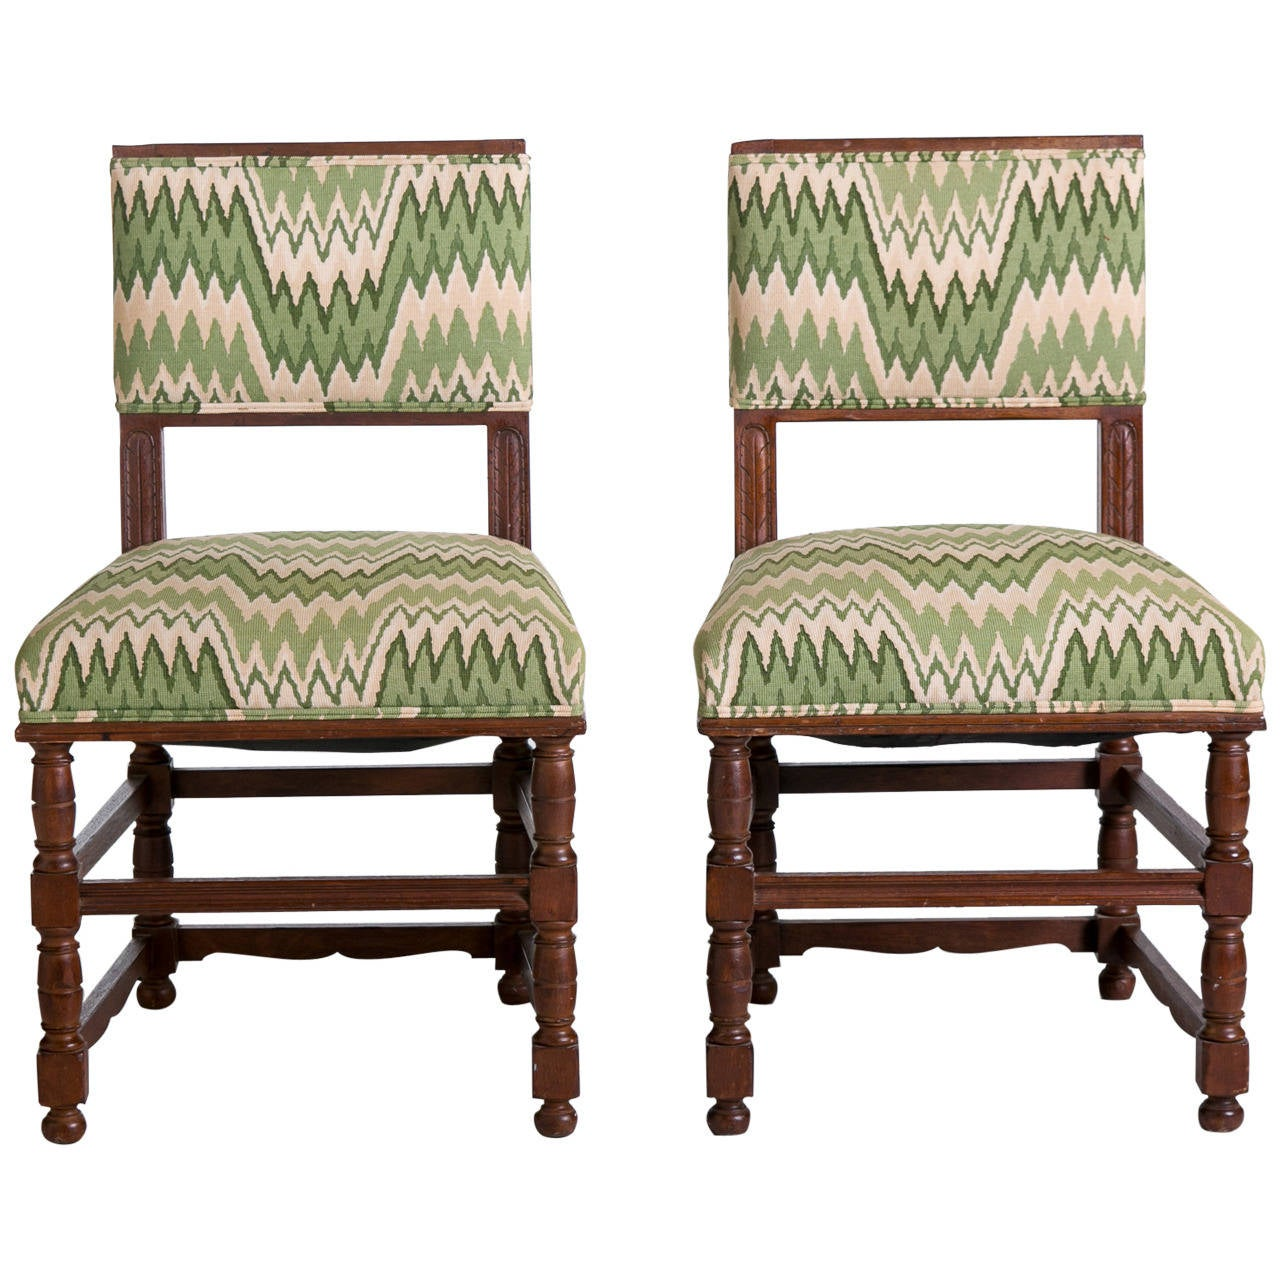 english tudor style side chairs with flame stitch fabric pair at